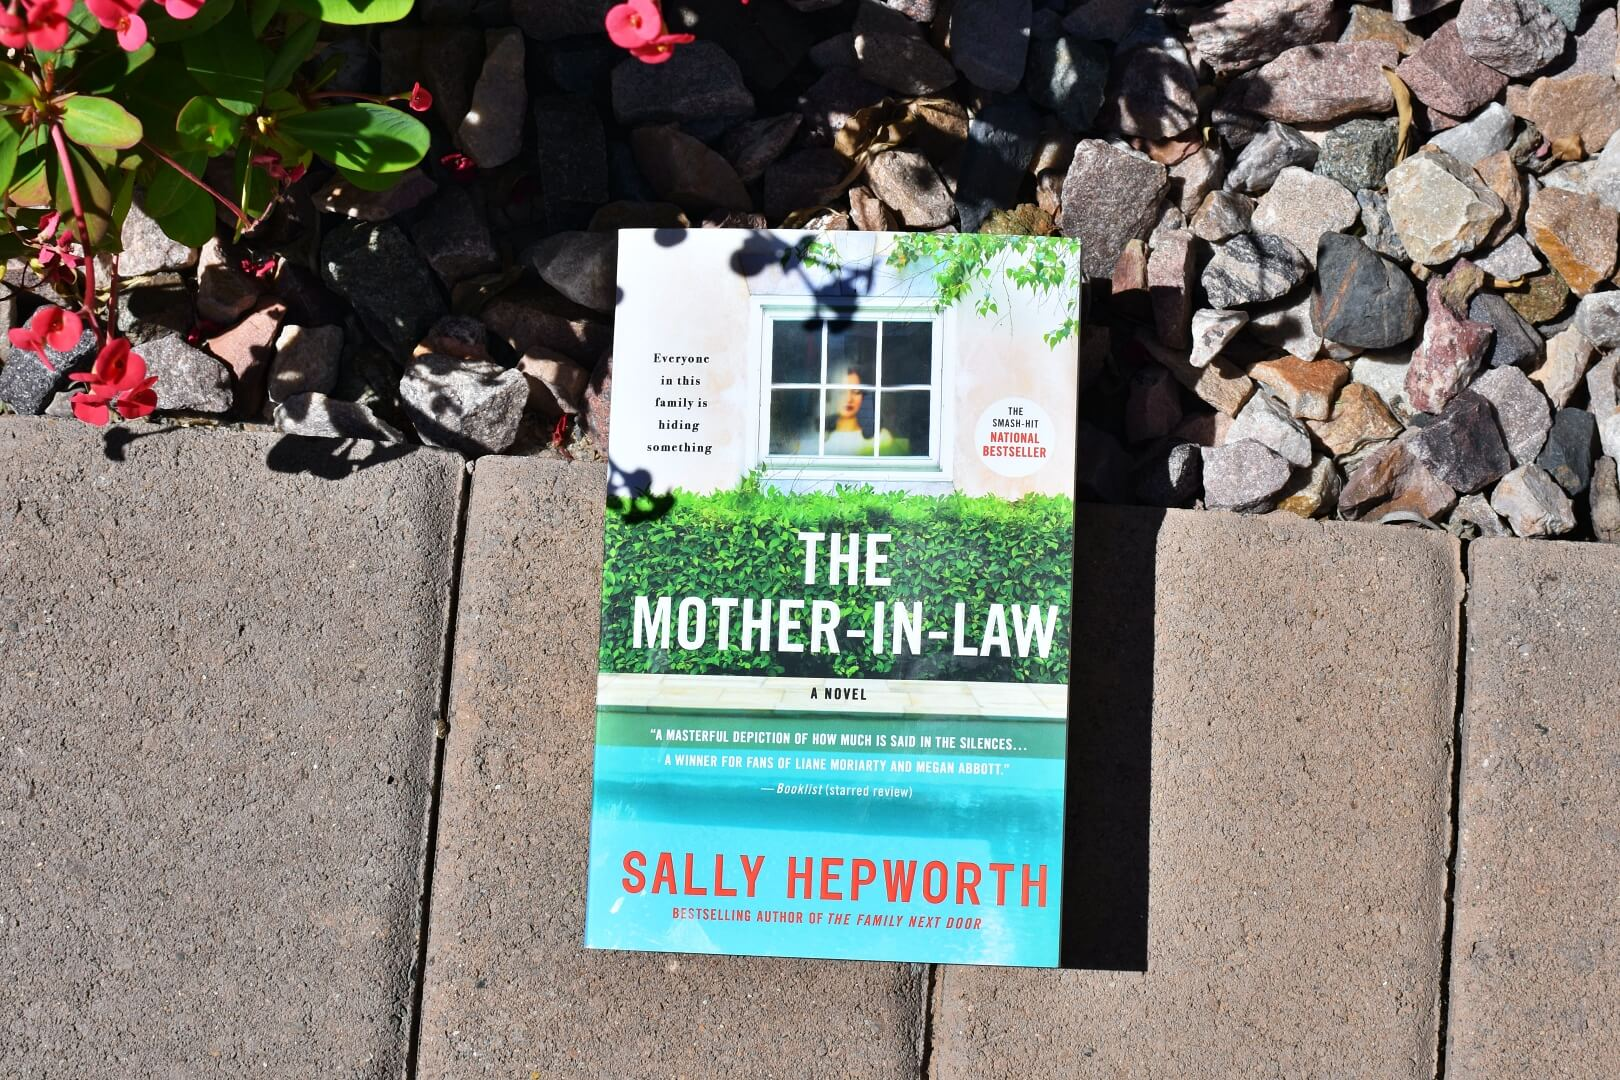 the mother-in-law review - book club chat